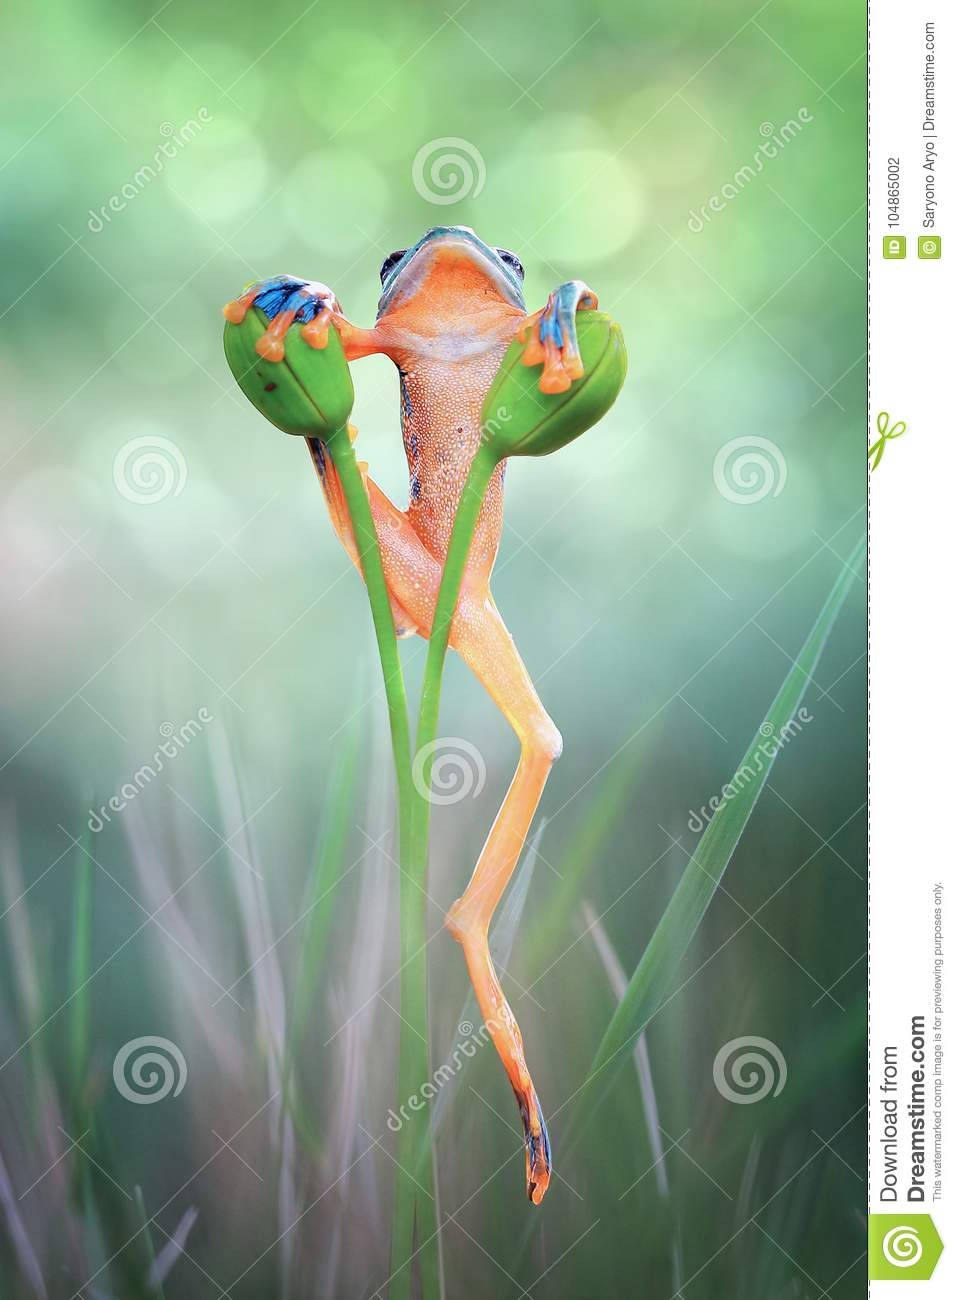 Tree frog, Flying frog on the branch